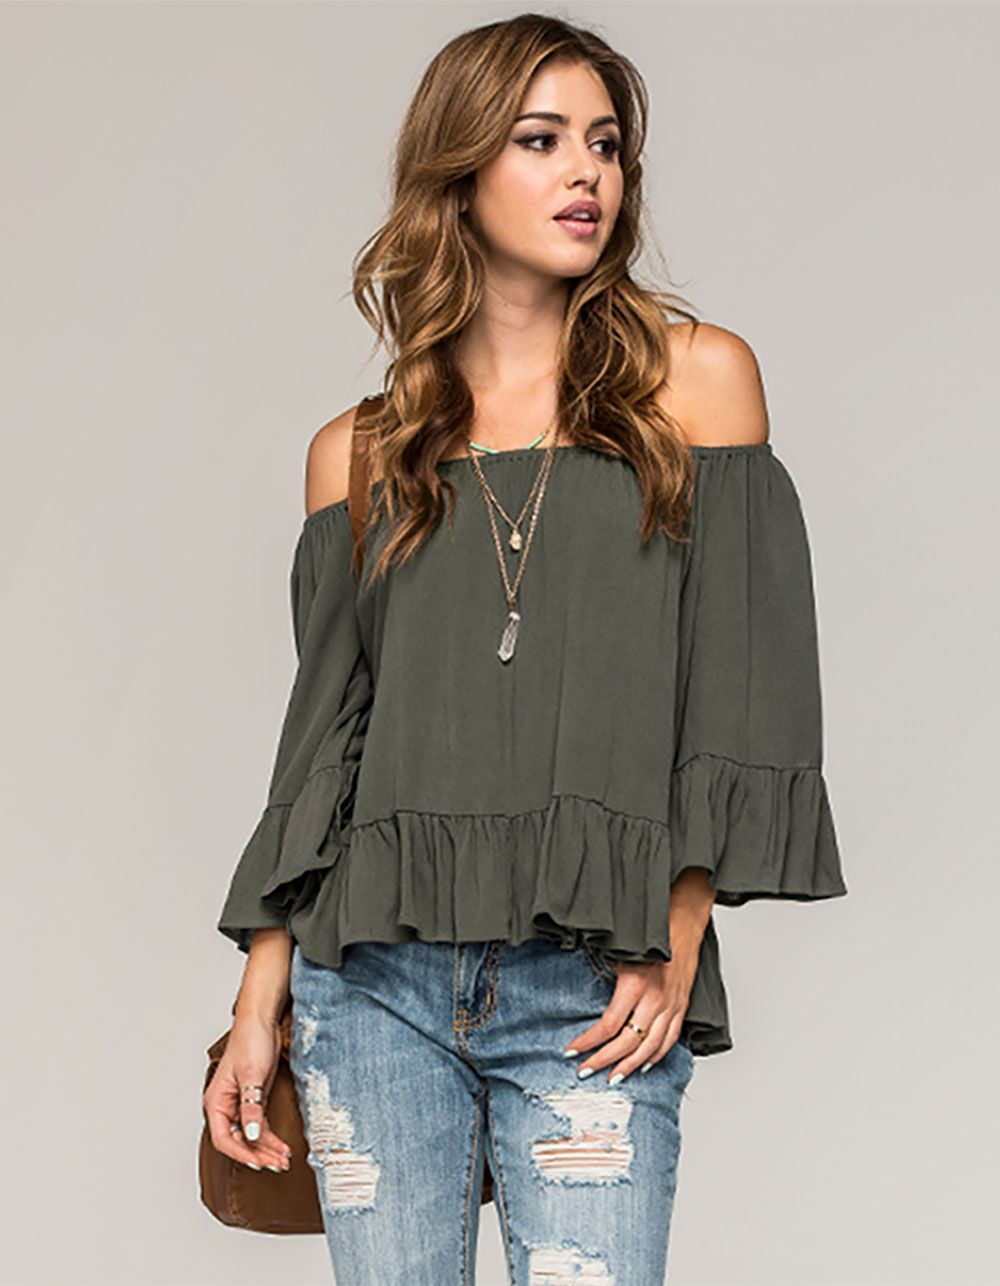 fea433e7efe8d5 Tilly s FULL TILT Off The Shoulder Ruffled Womens Top Found on my new  favorite app Dote Shopping  DoteApp  Shopping